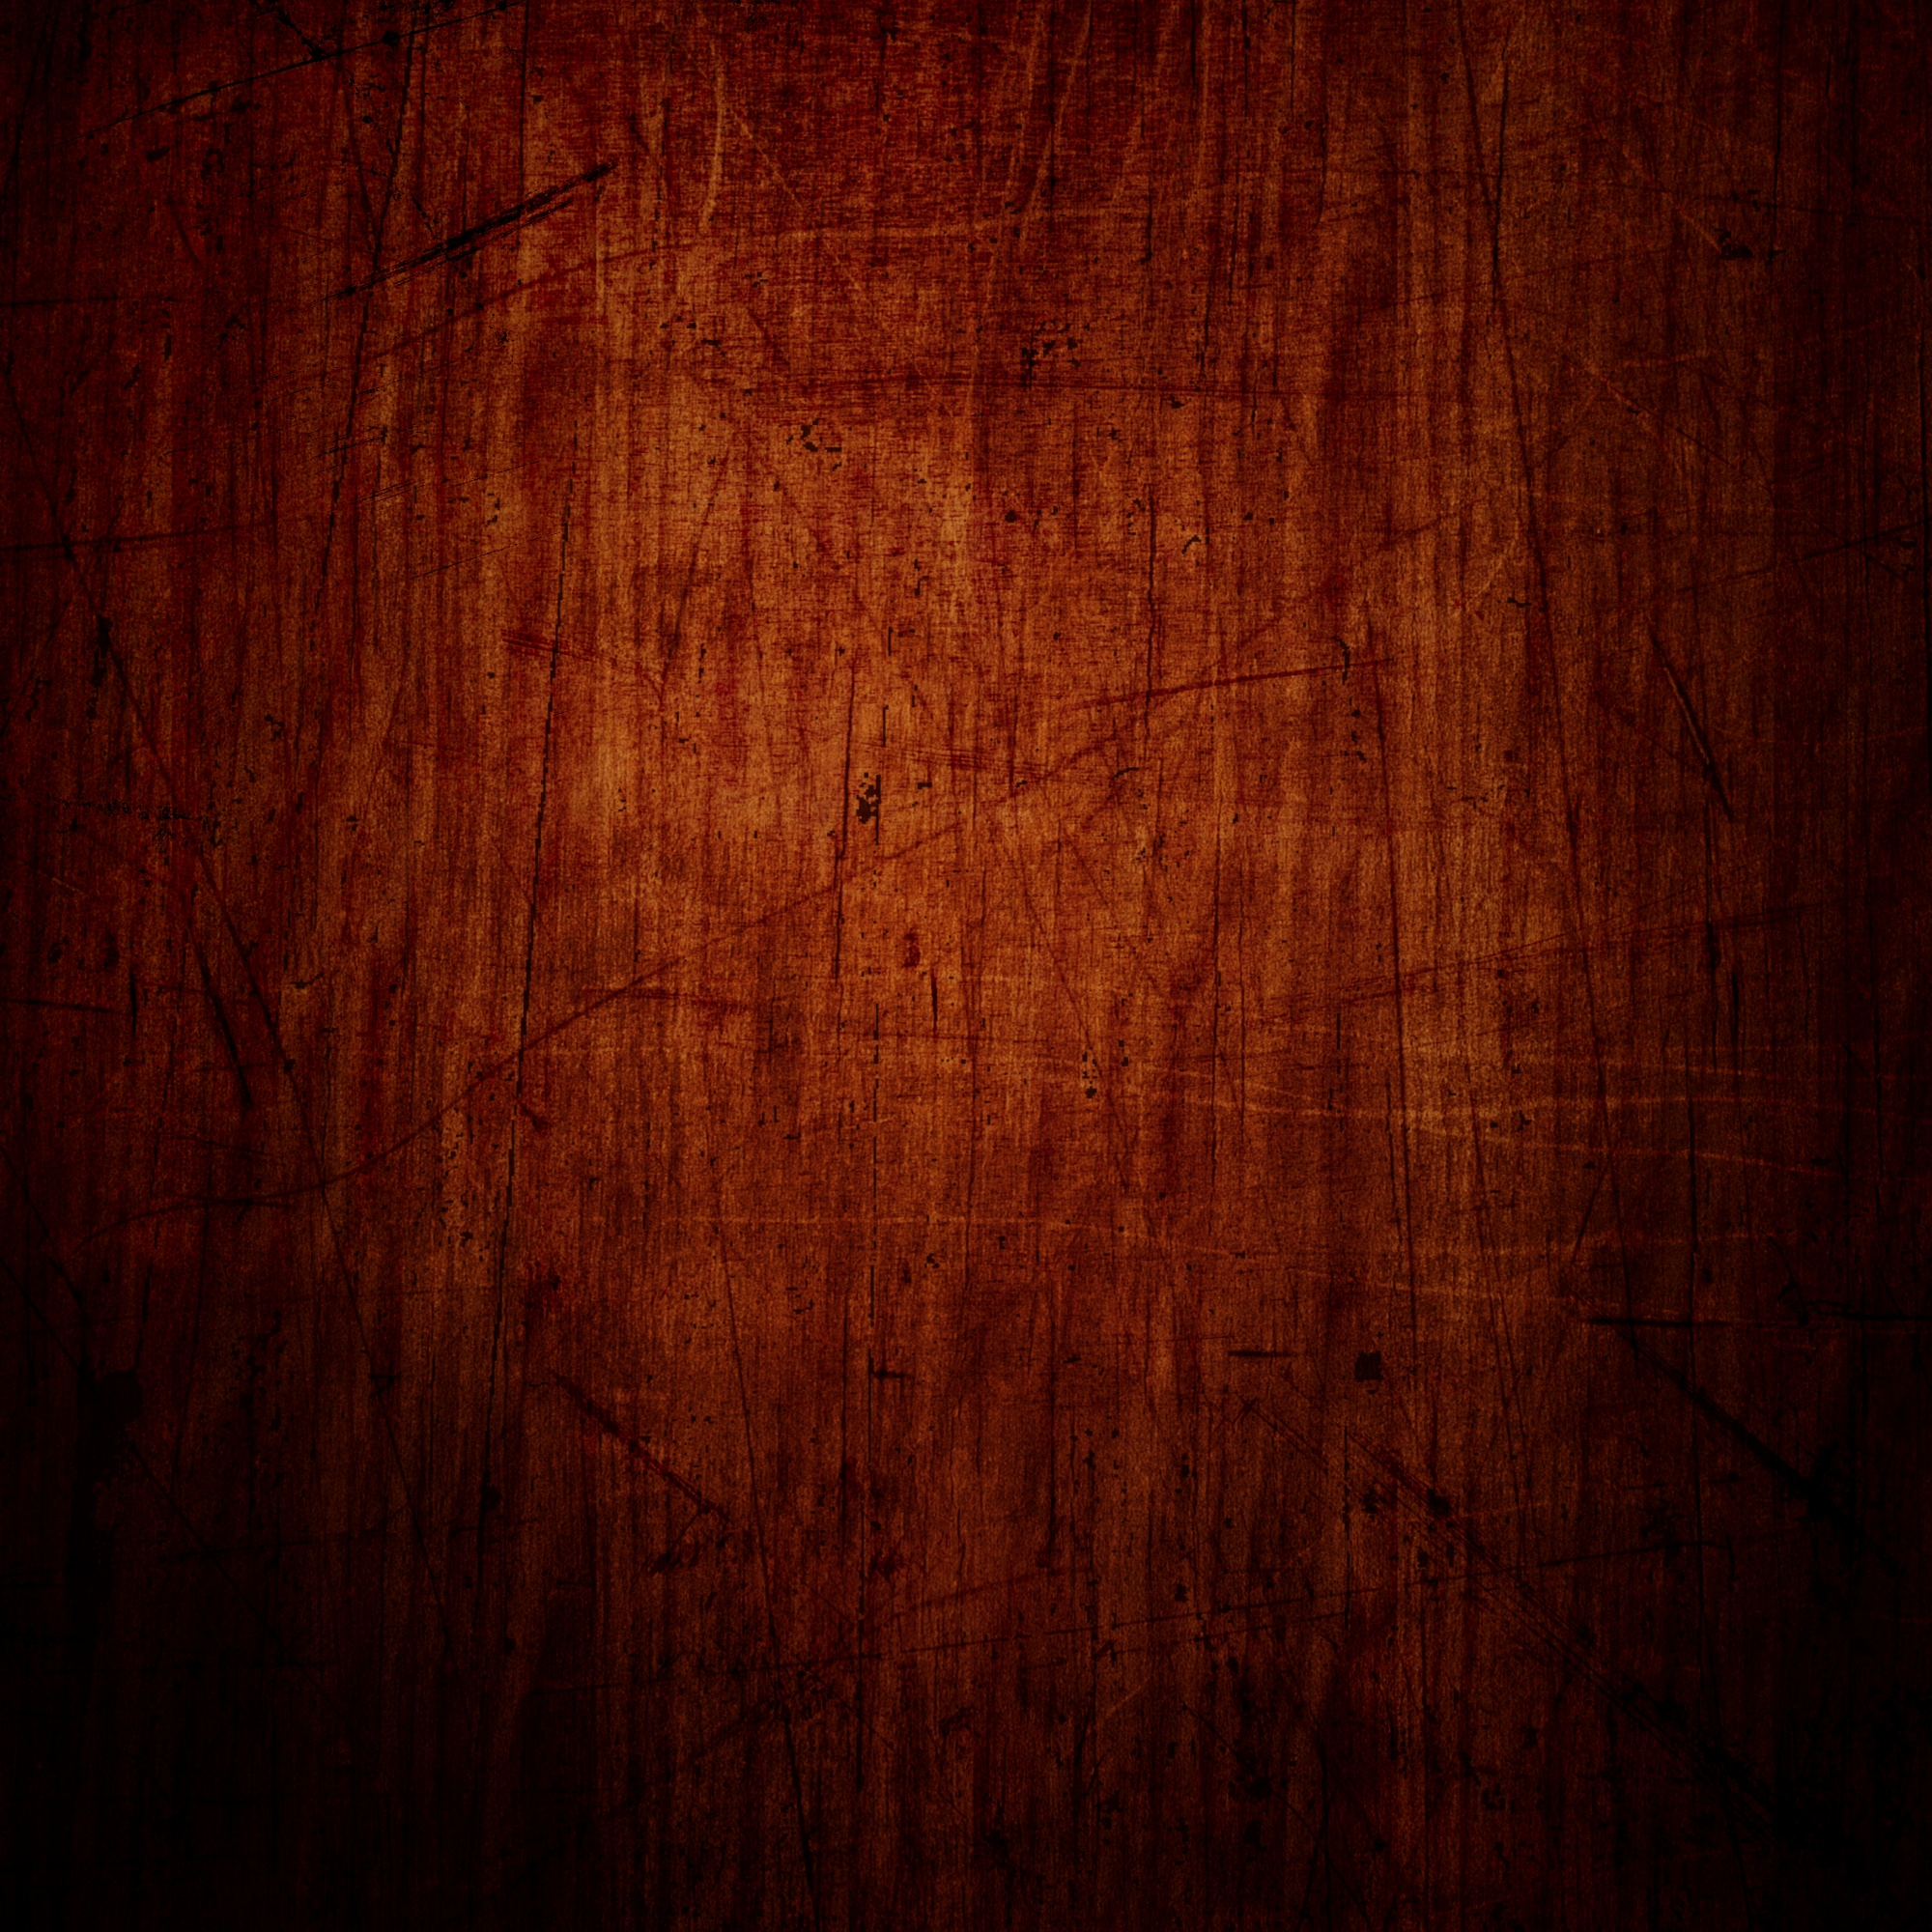 Red wood texture